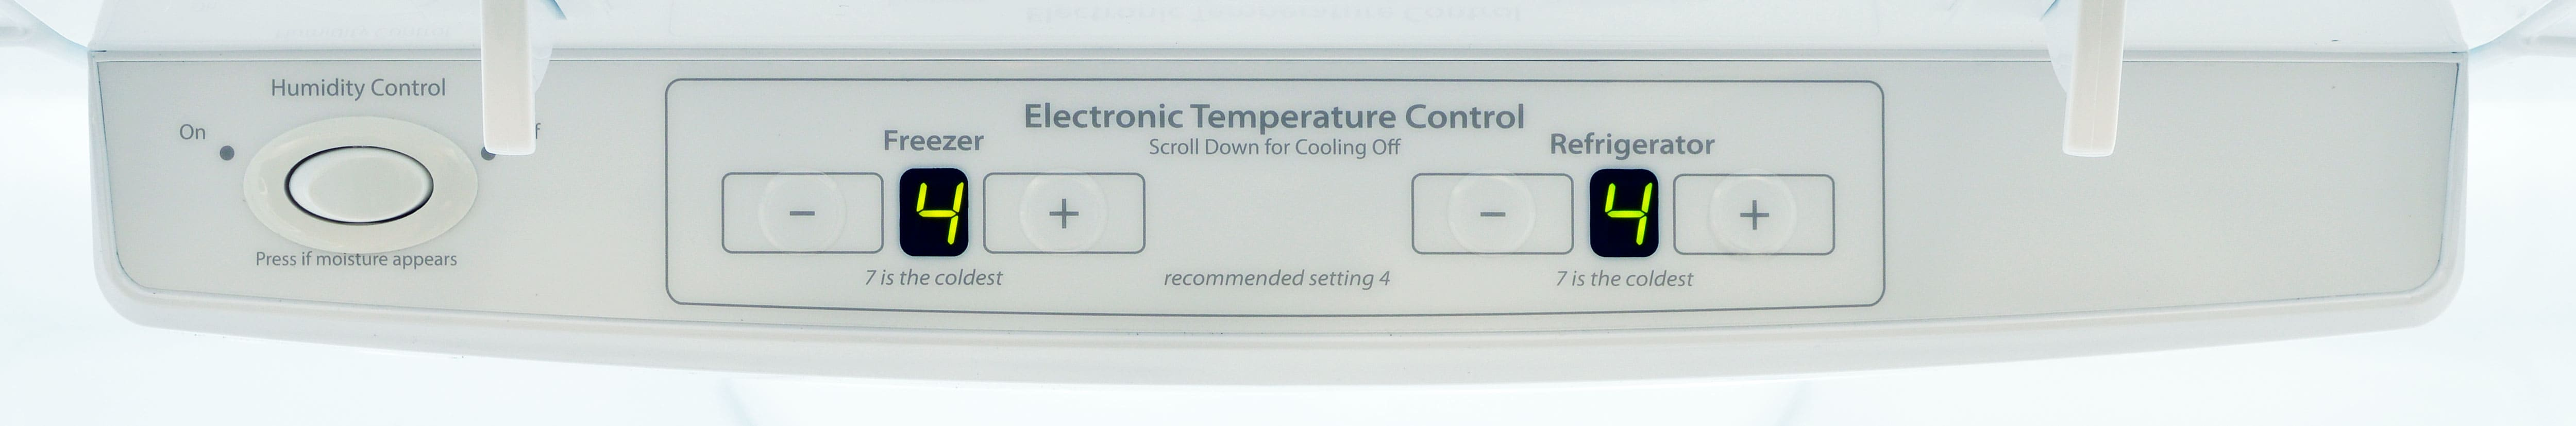 The Whirlpool WRF535SMBM's controls are easy to adjust, but the 0 to 7 scale isn't terribly informative.